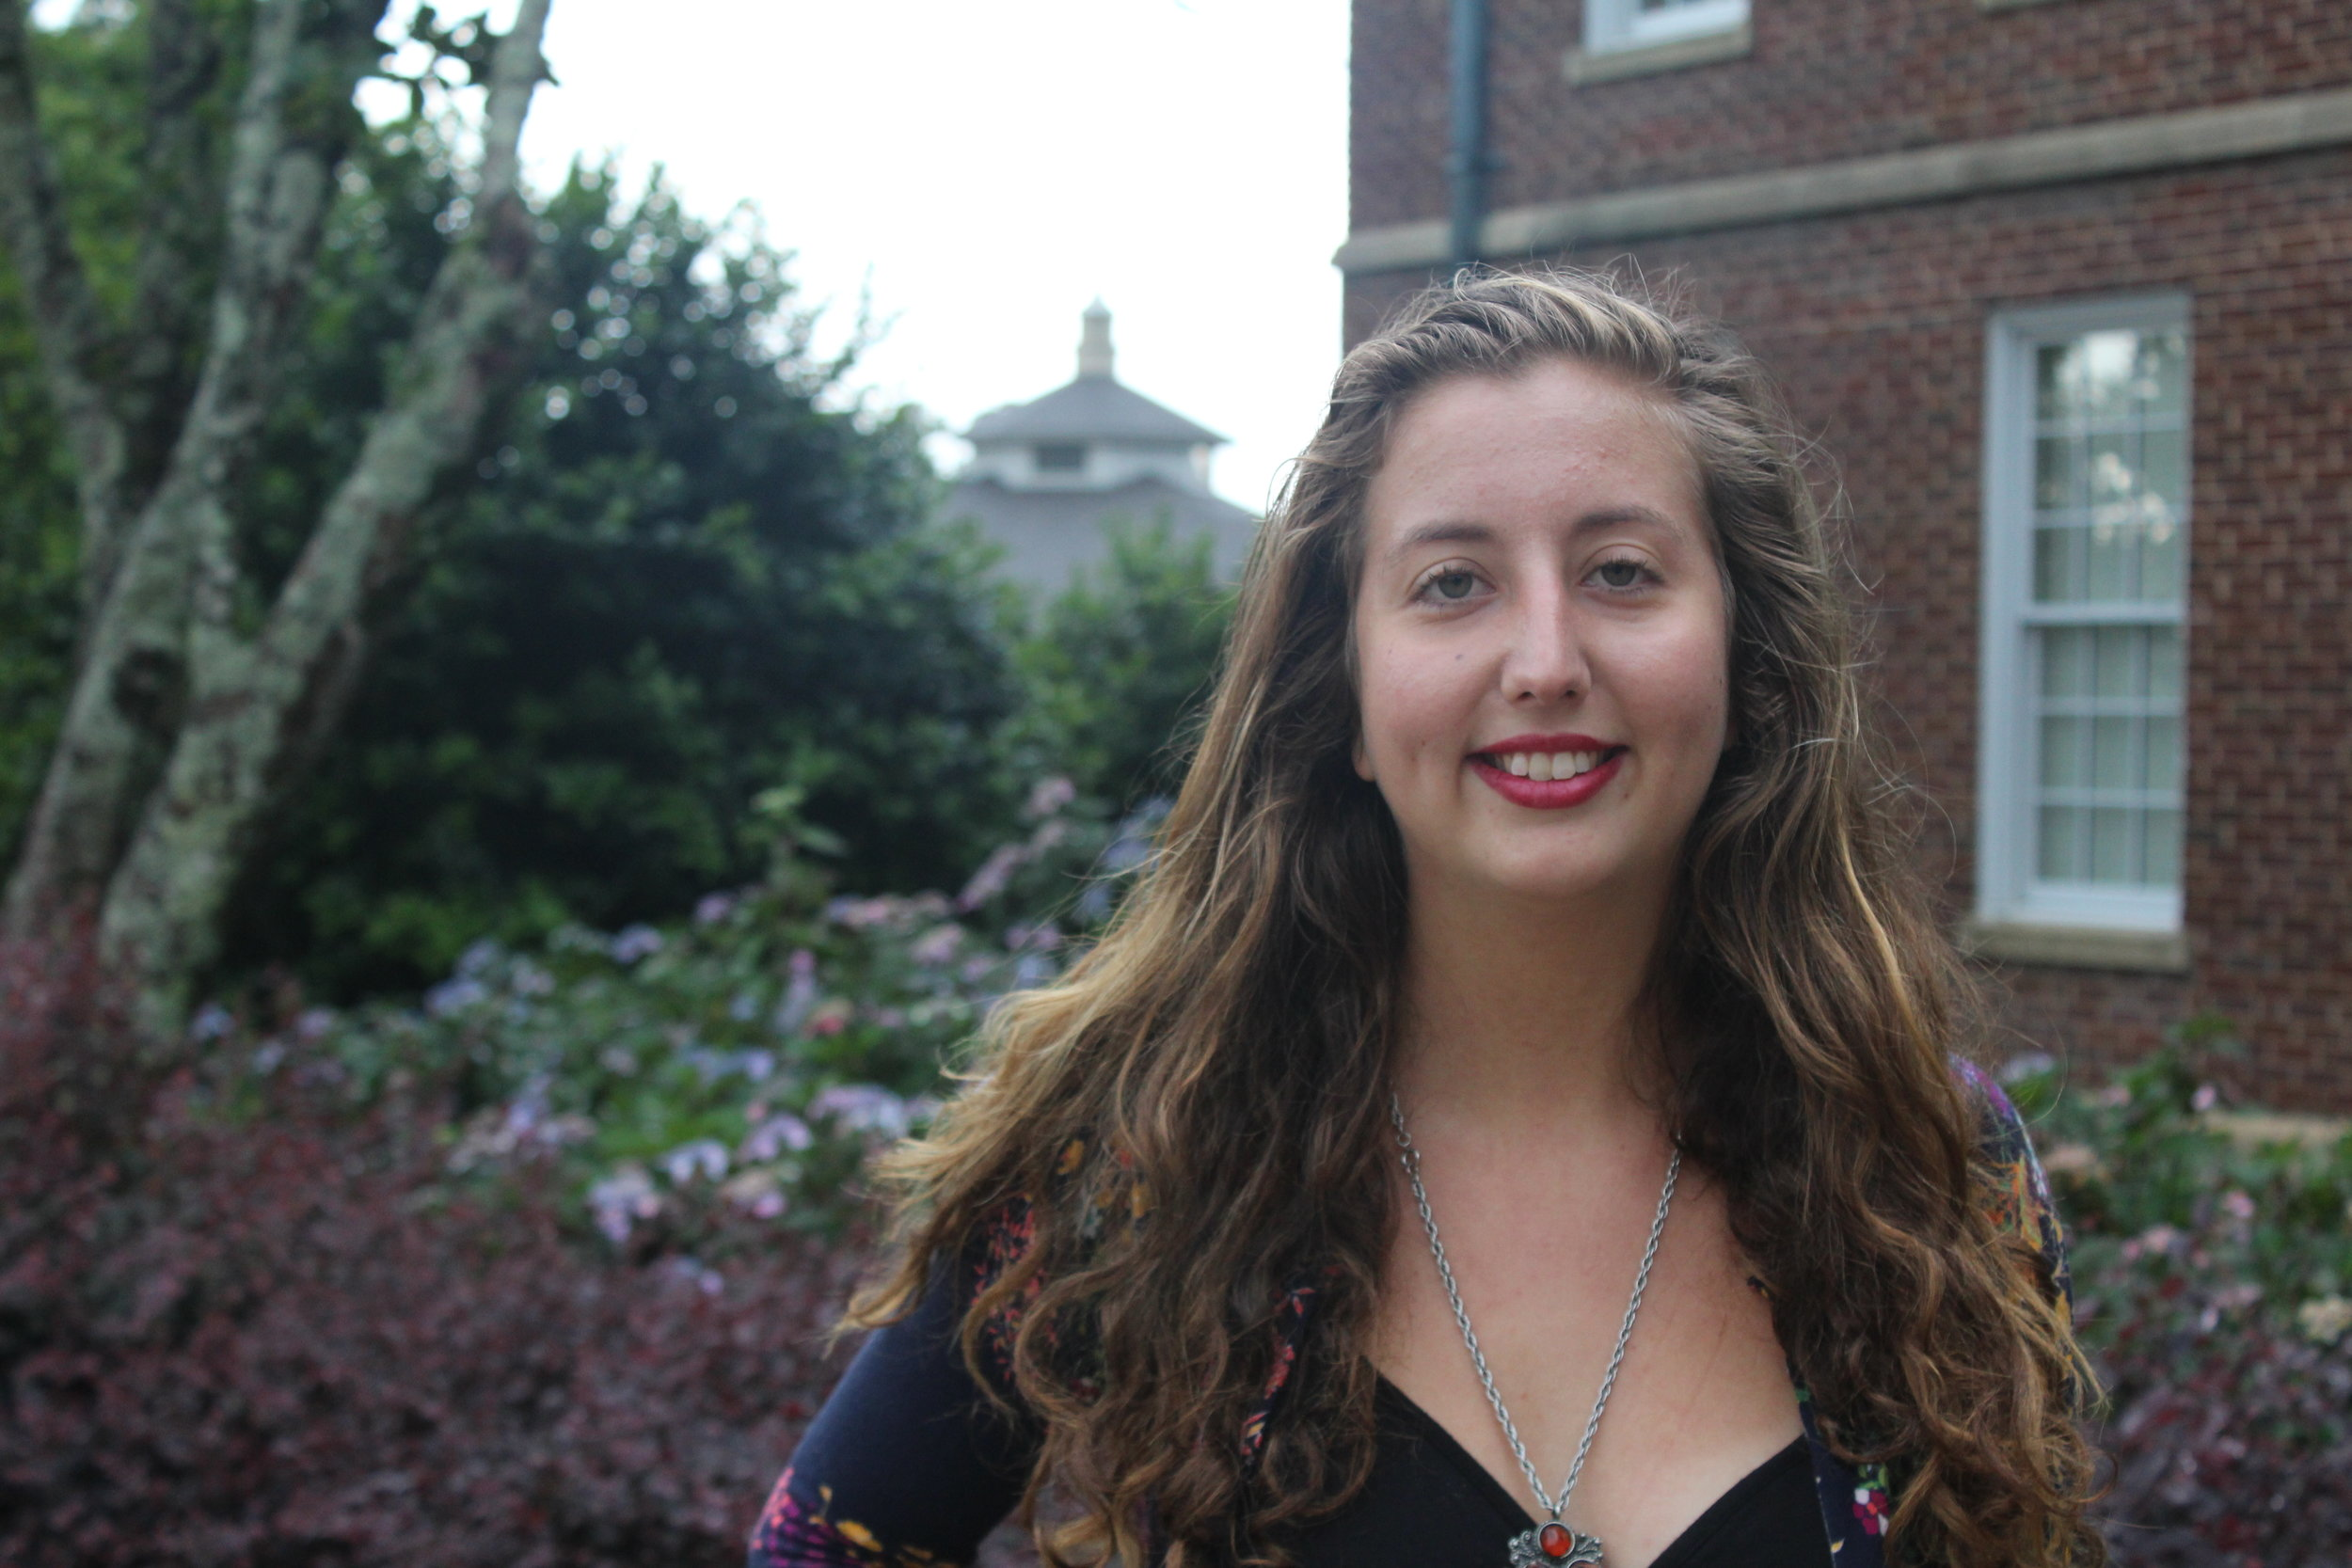 Alexandra Melnick is an alumna of Millsaps College and member of the 2017 MTC cohort.